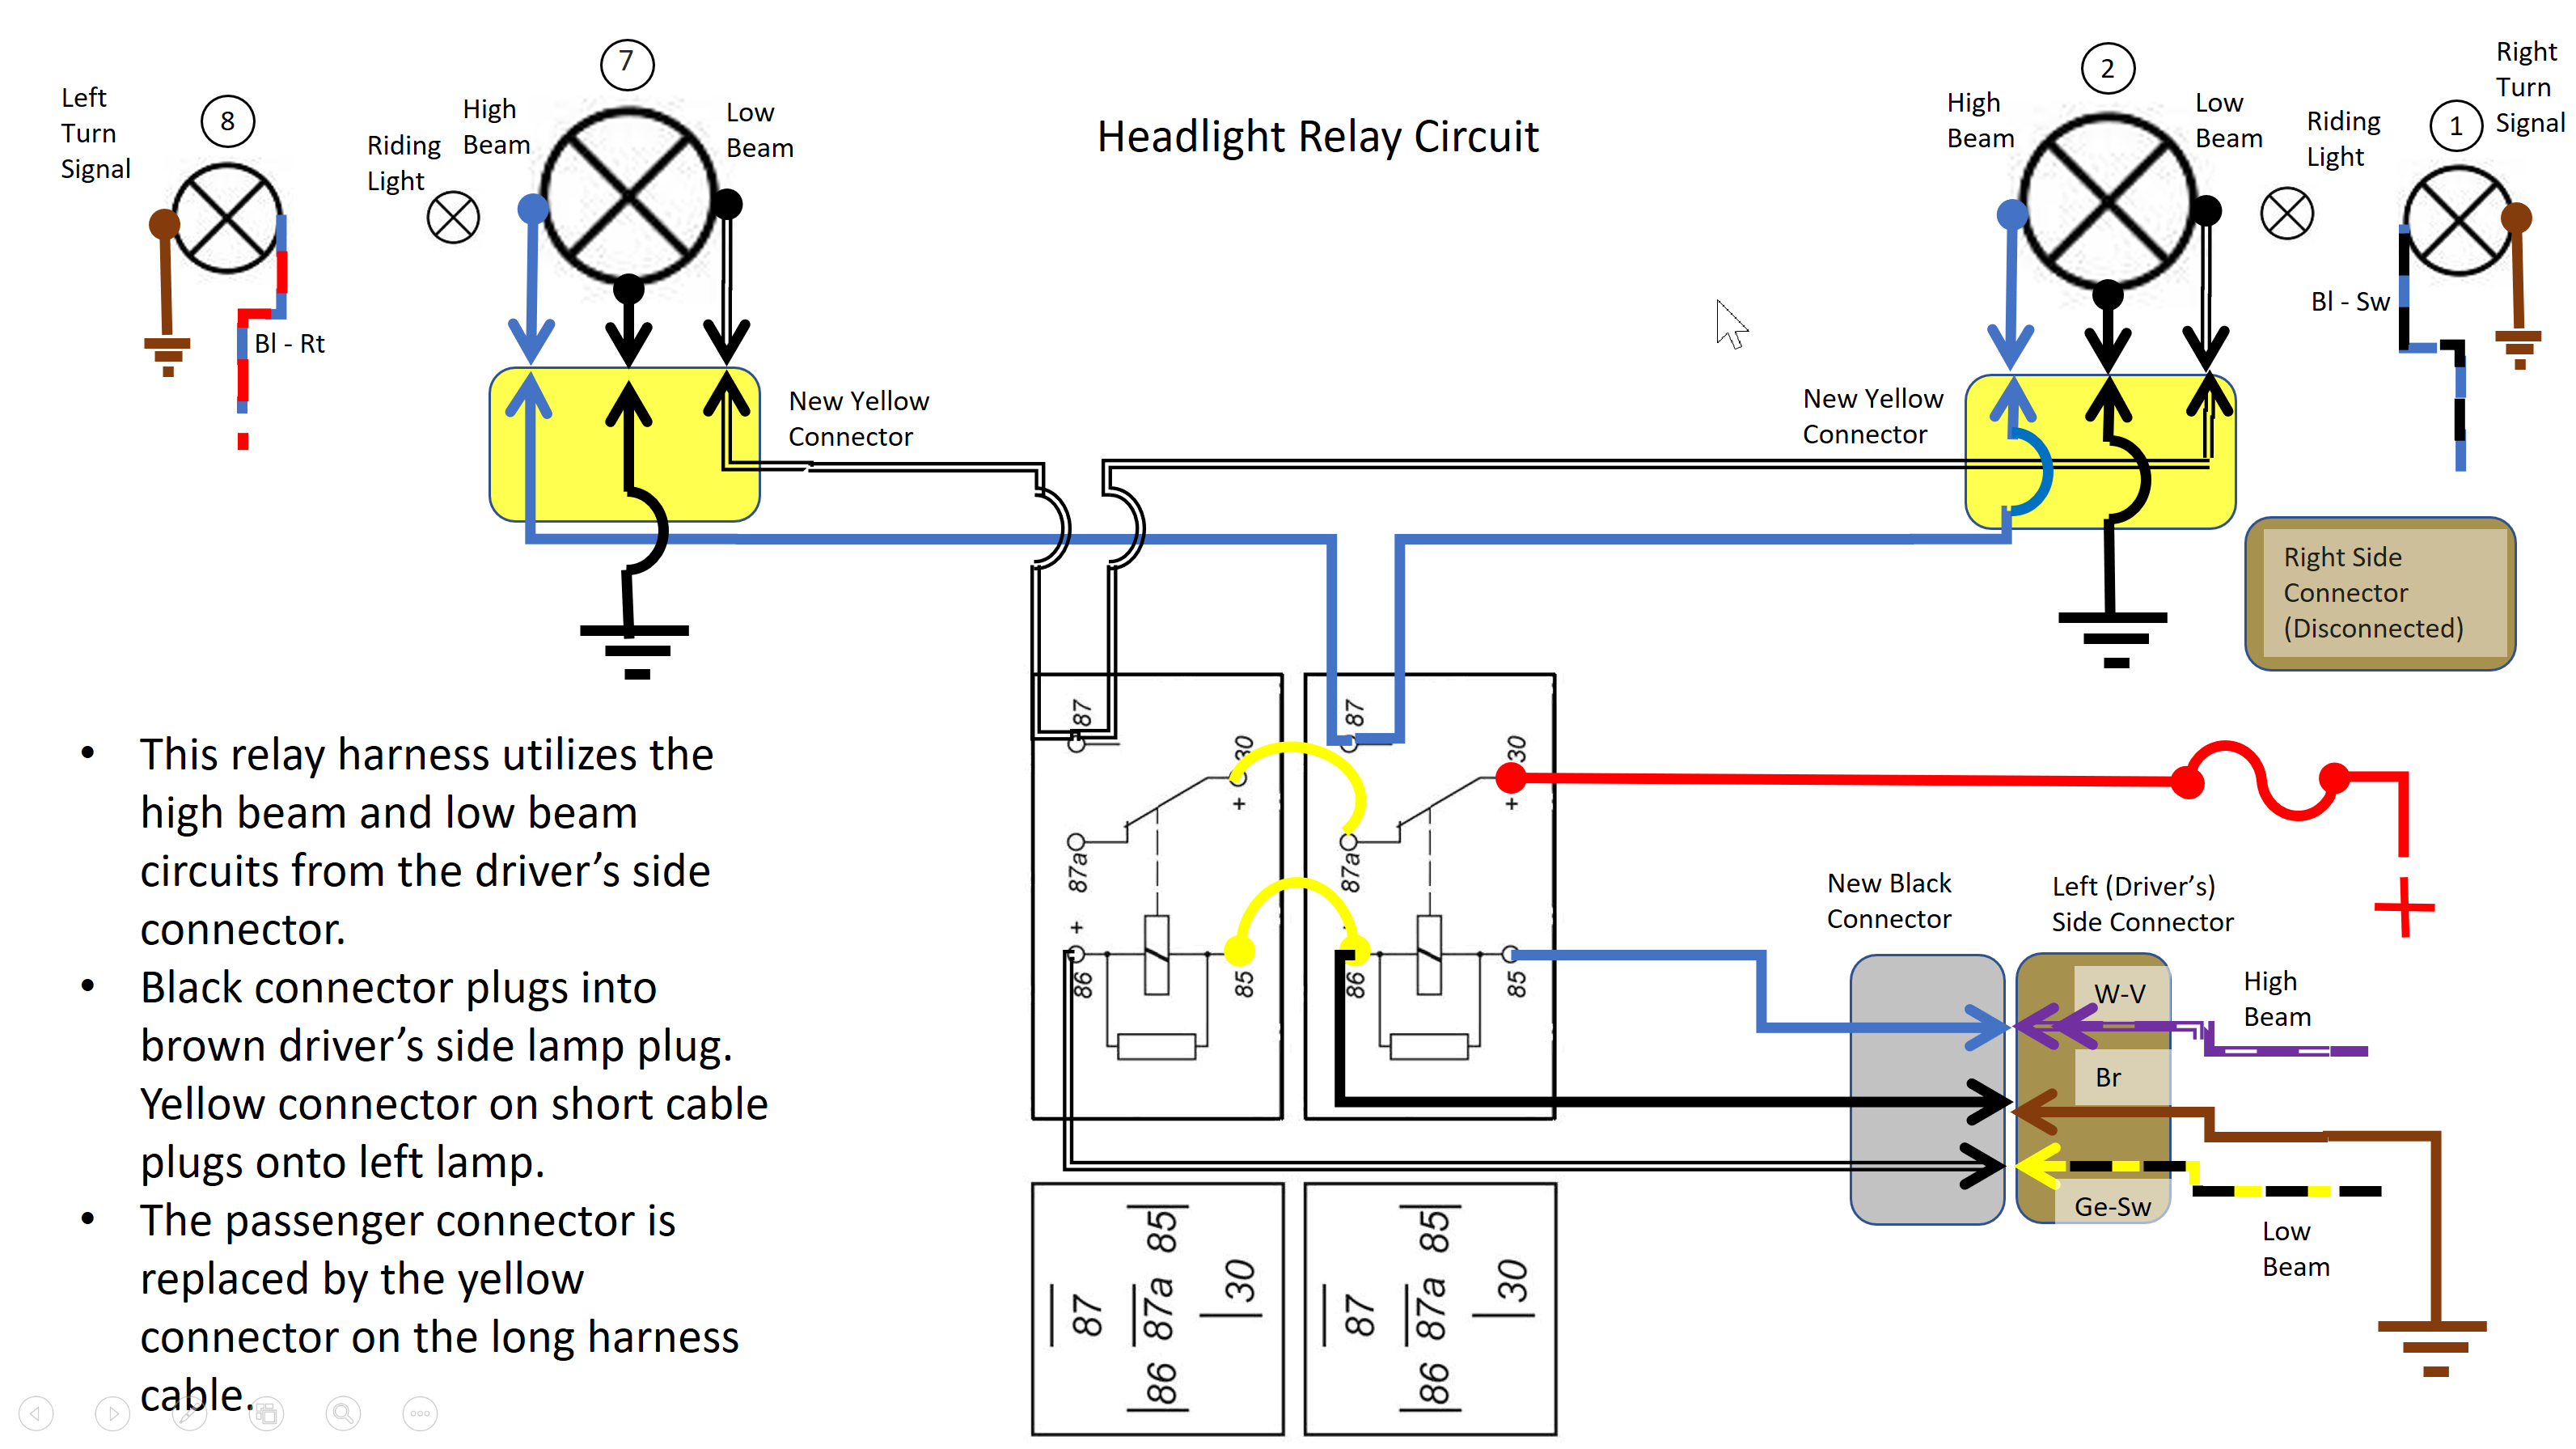 H4 Headlight Relay Wiring Diagram 2. 1993 Dodge Pick Up ... on